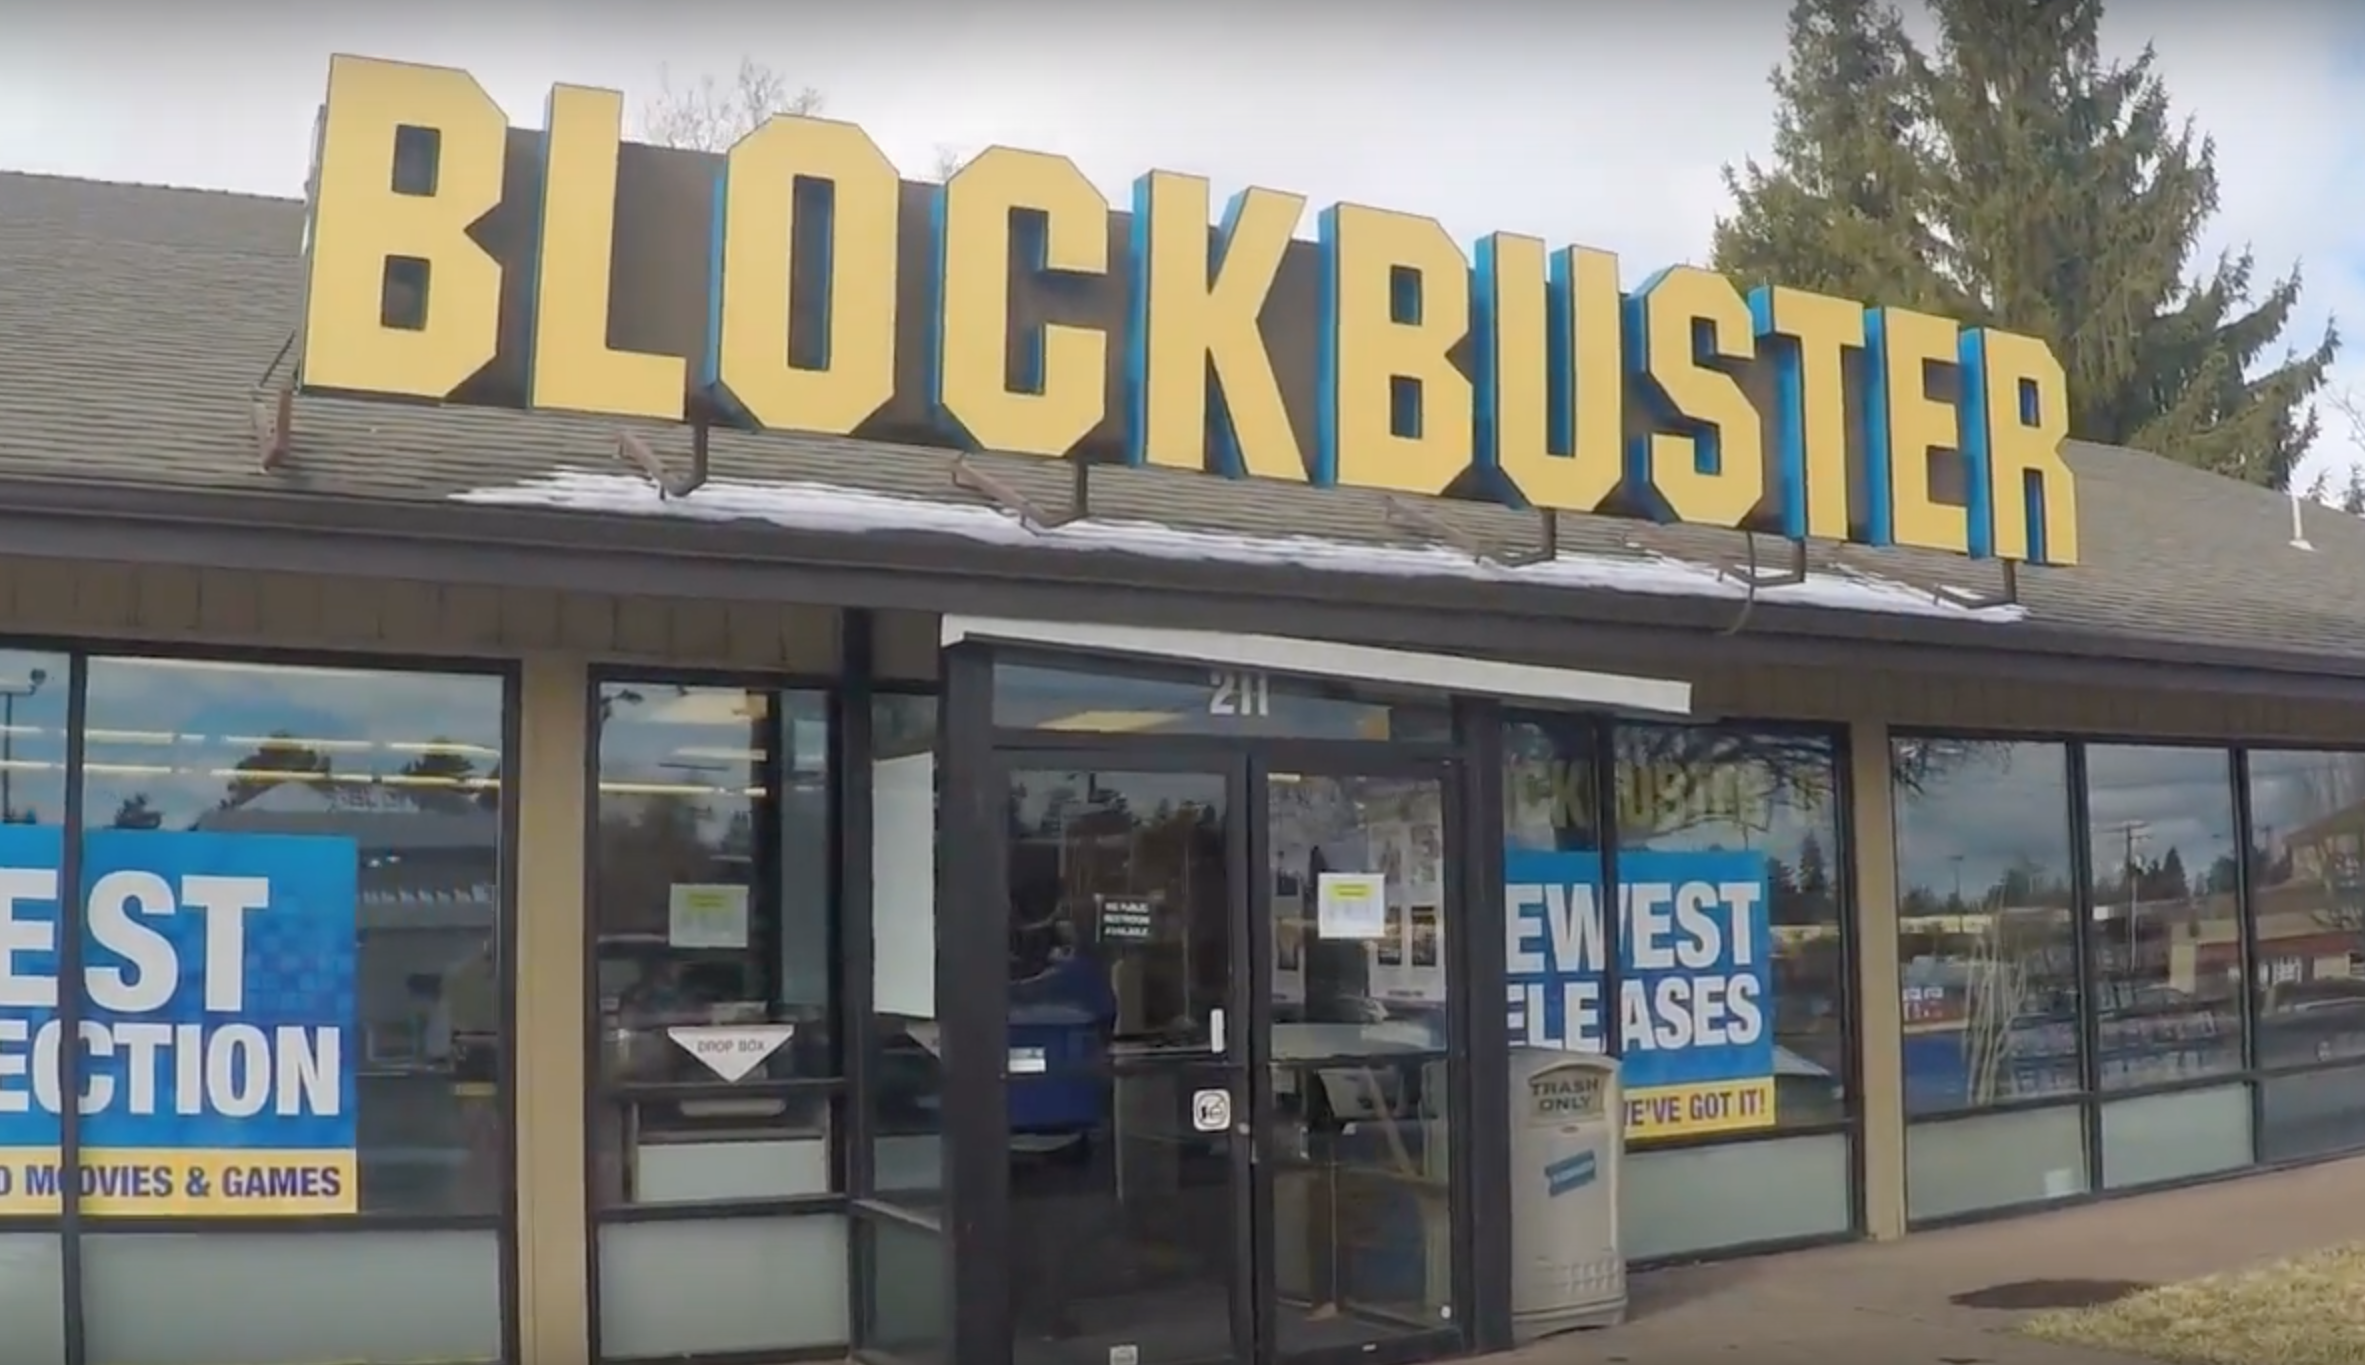 Oregon Is Home To The Last Remaining Blockbuster Video